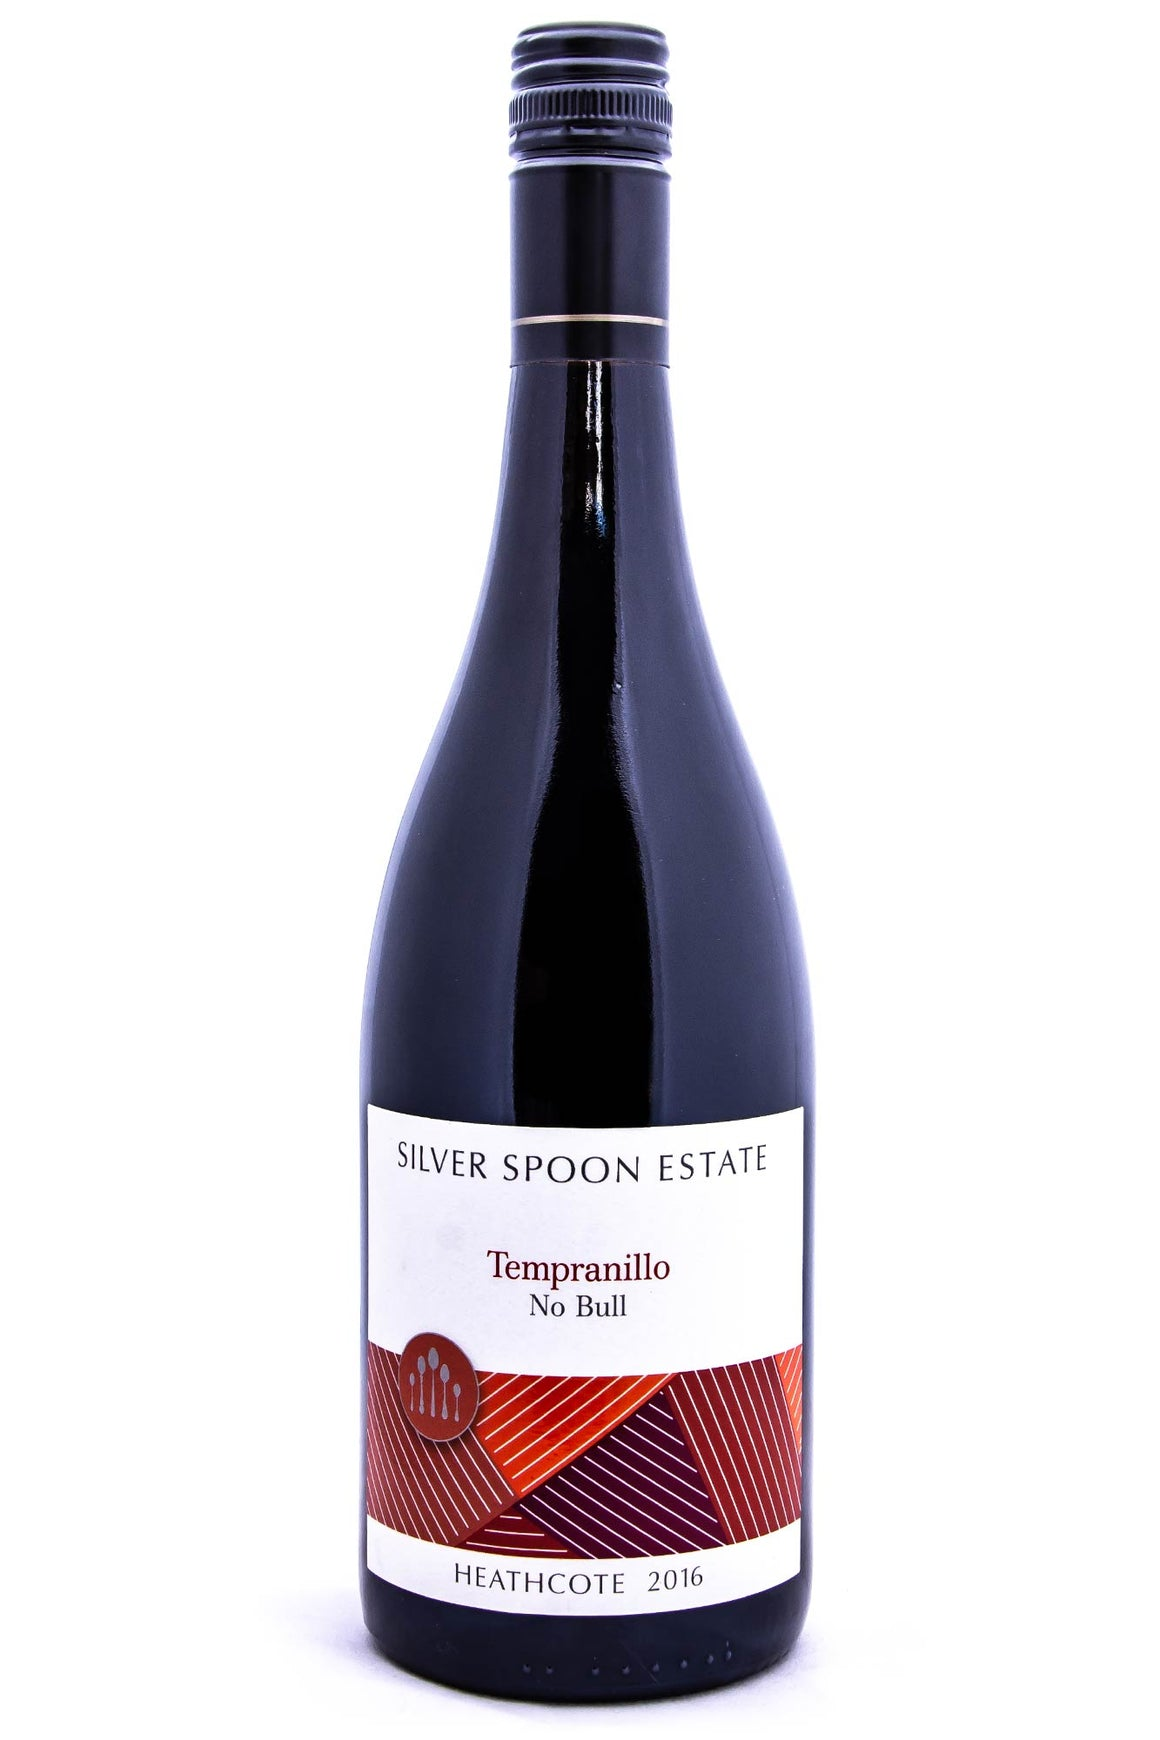 Silver Spoon Estate No Bull Tempranillo 2016